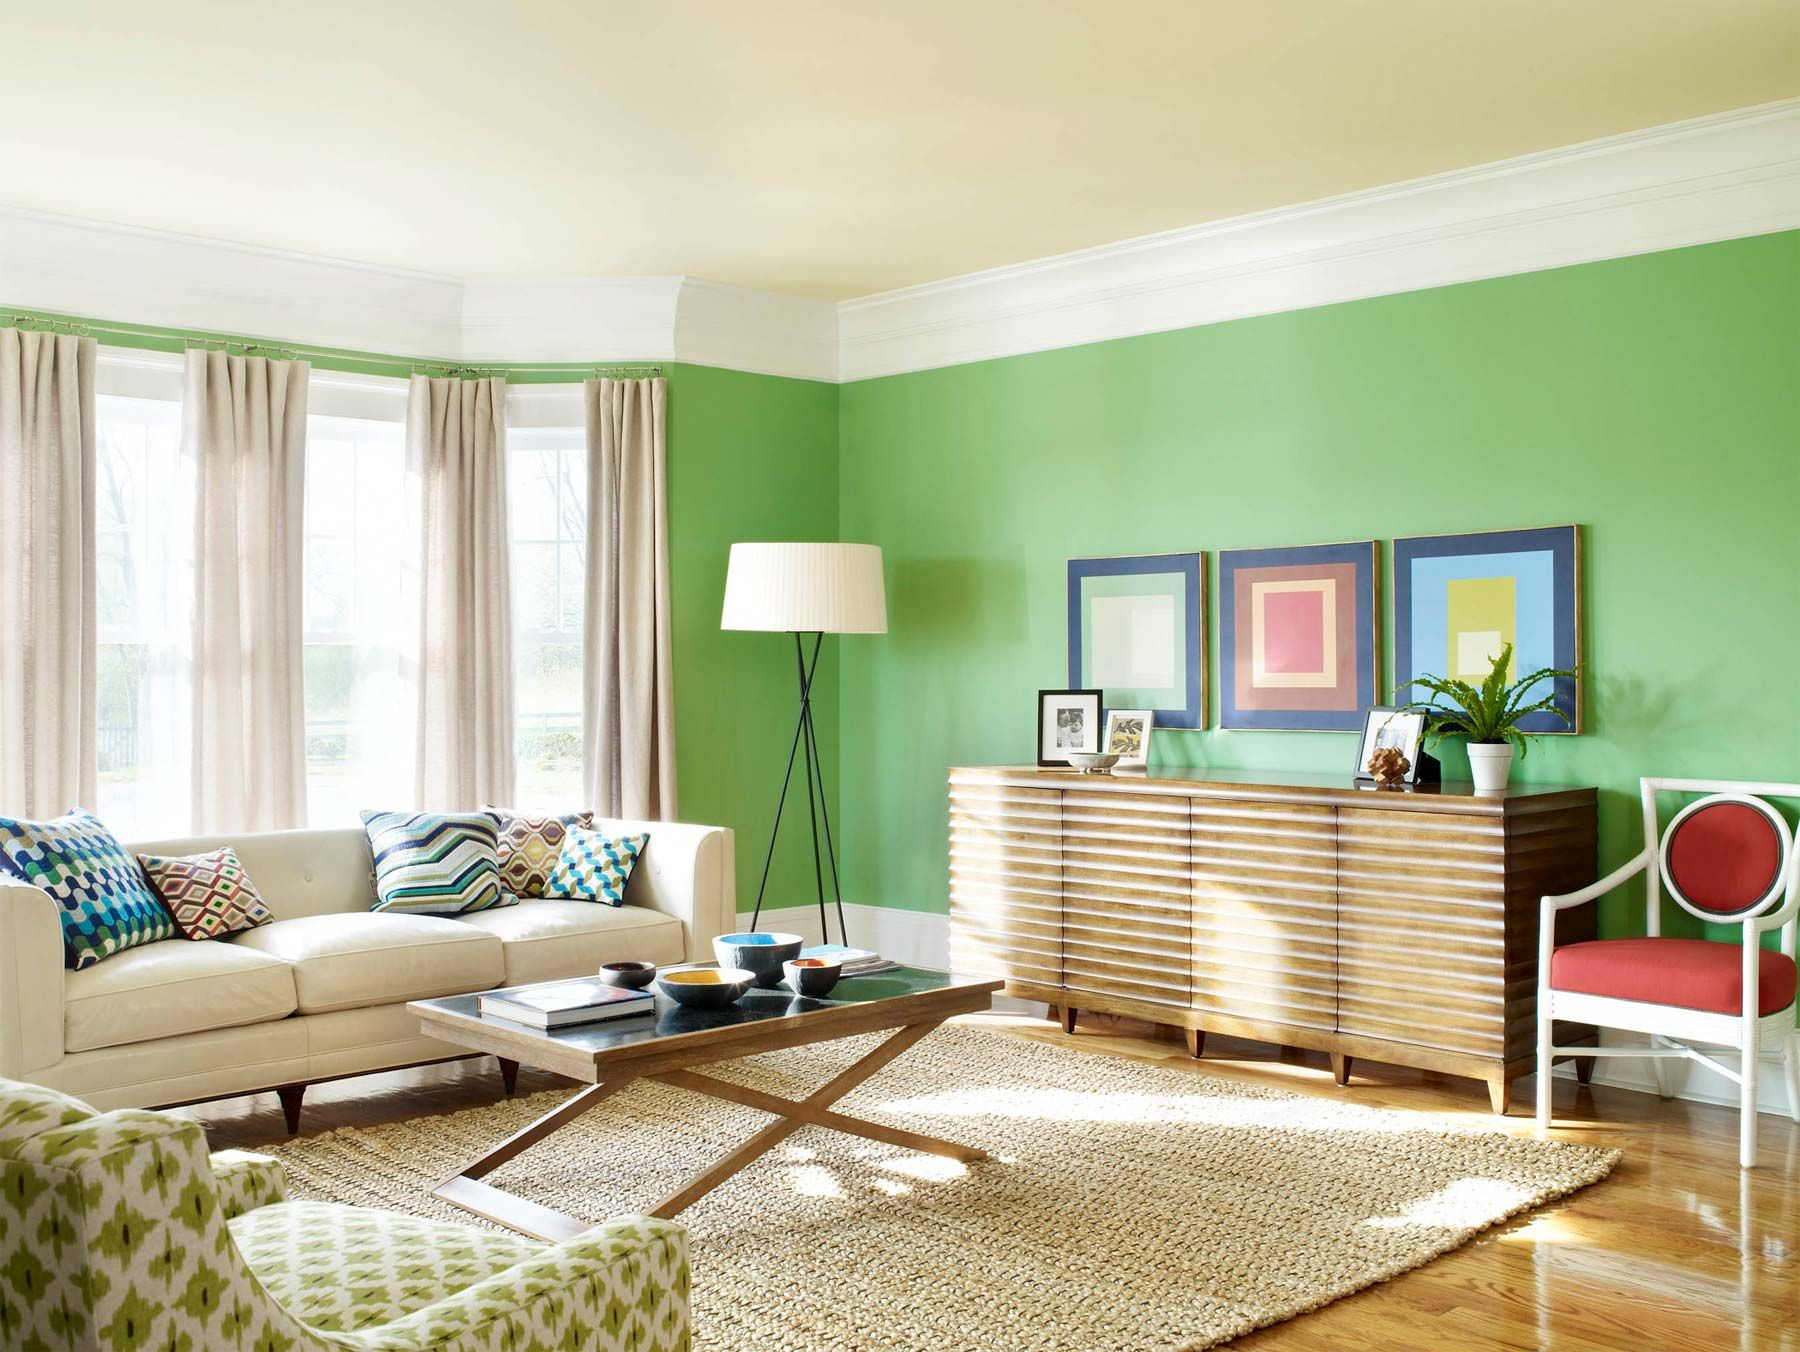 Interior Design Color Always Consider Interior Designers For Quality Work  Interiors .